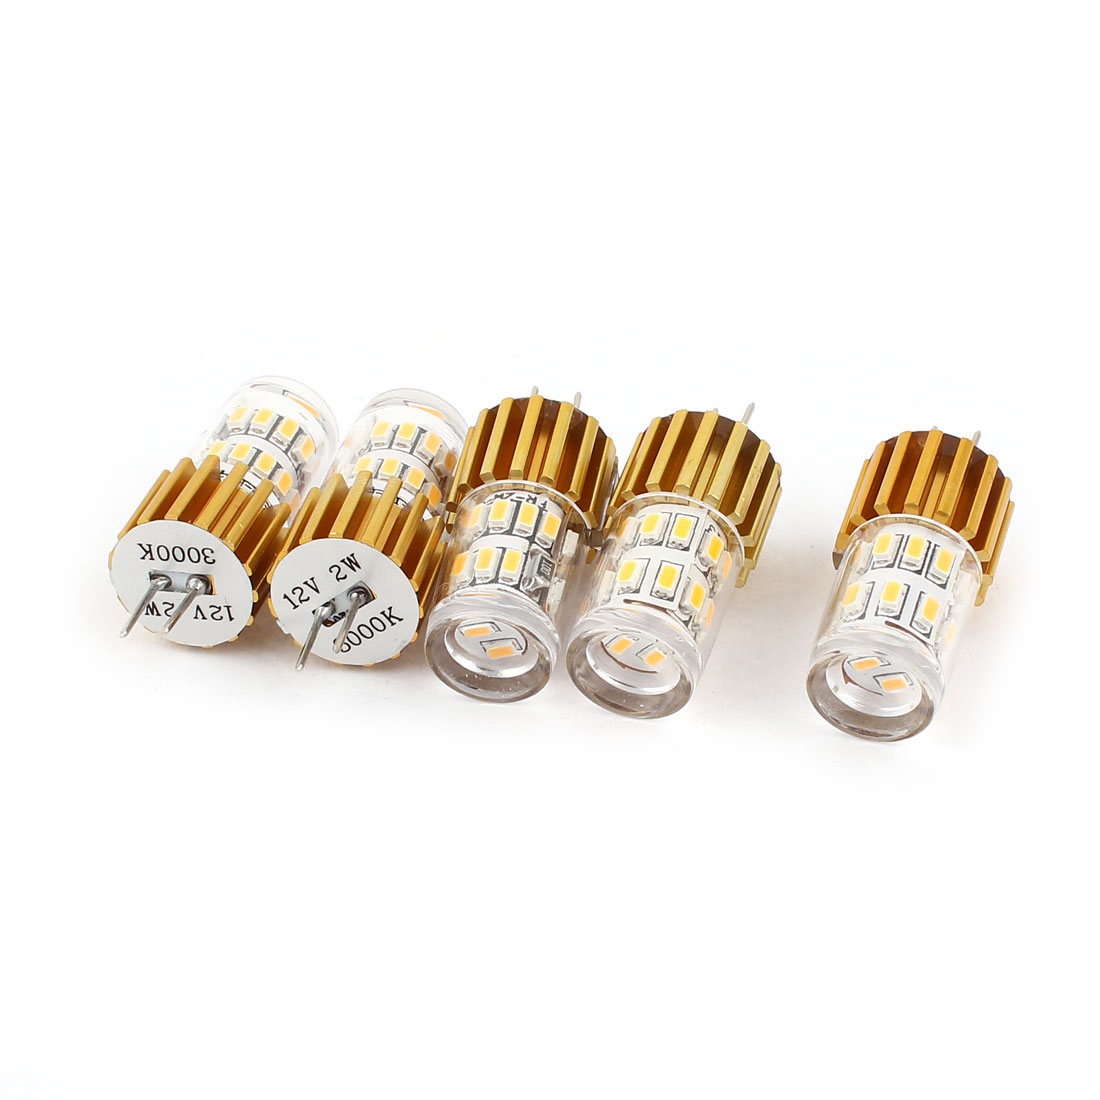 5 Pcs Aluminium Energy Saving G4 2W 3014 SMD 24 LED Bulb Light White DC12V